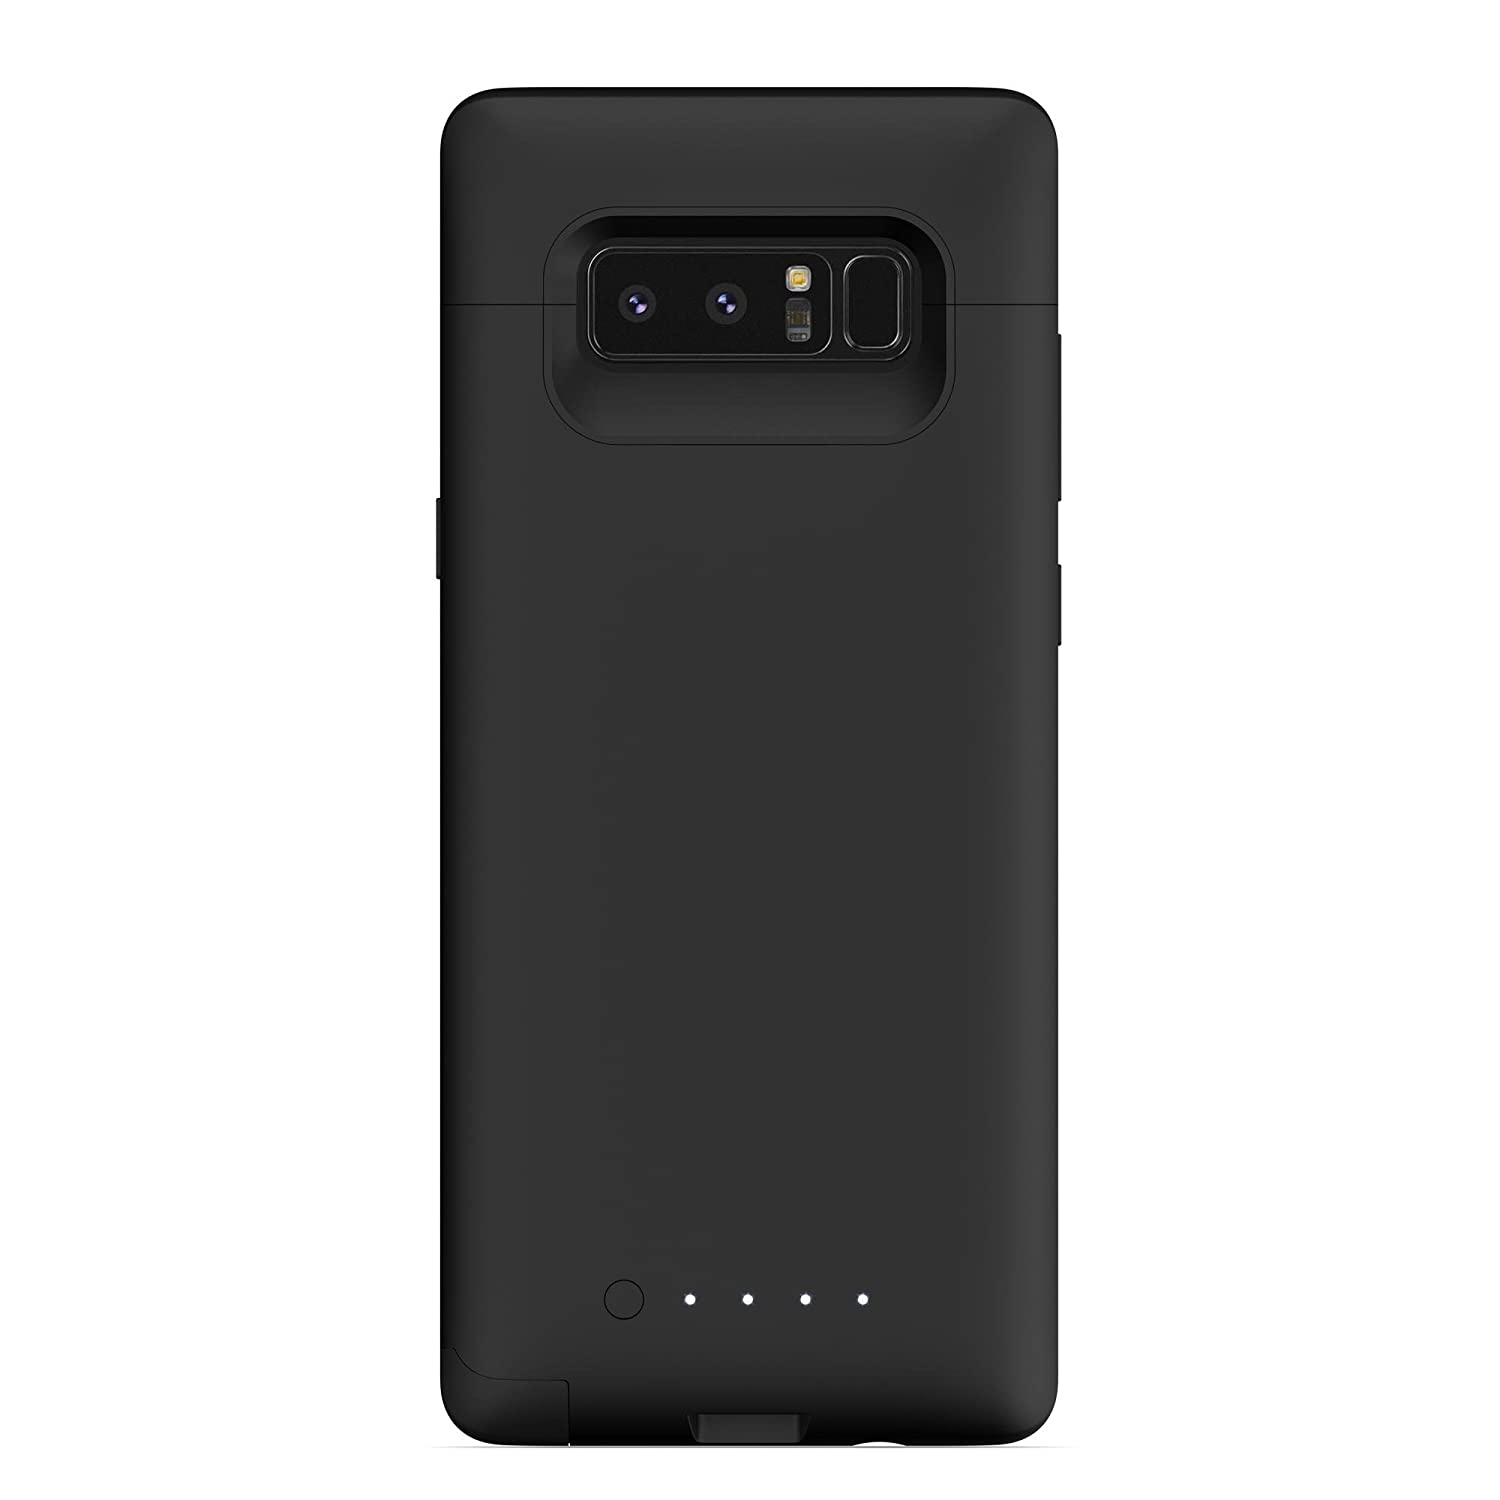 size 40 e6d90 2fb15 Mophie Battery Case for Samsung Note 8, Black - 4101_JP-SGN8-BLK